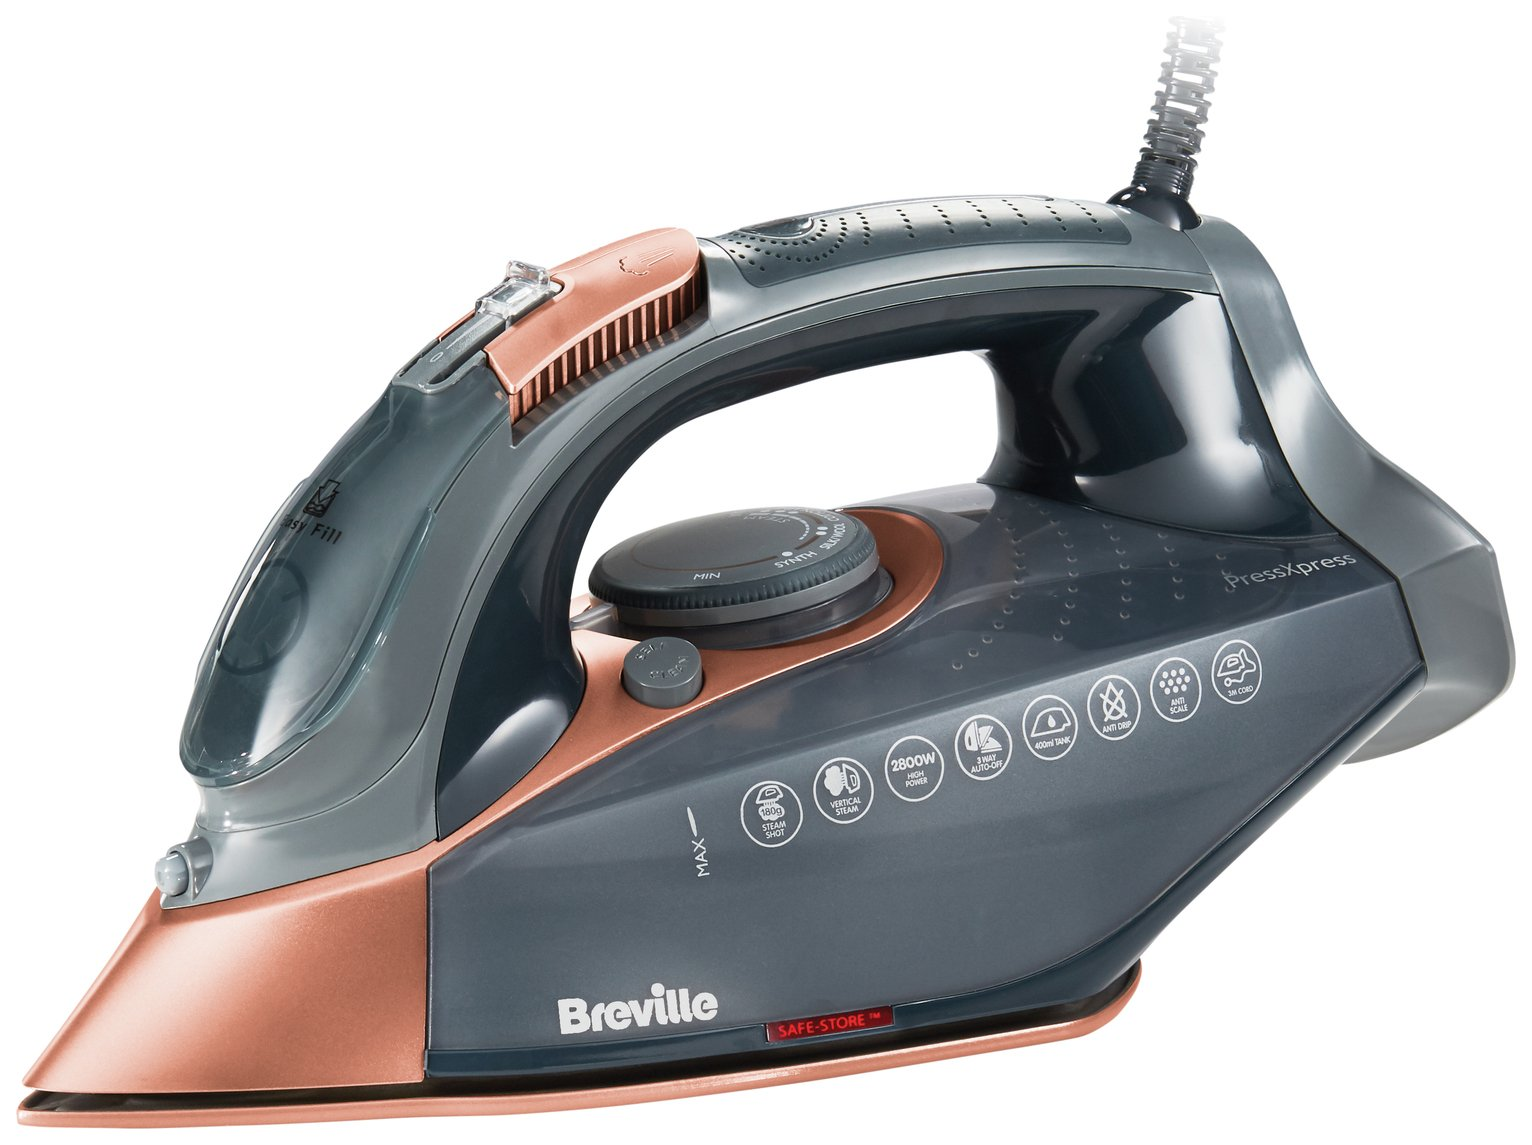 Breville Press Xpress VIN407 Steam Iron £39.99 @ Argos